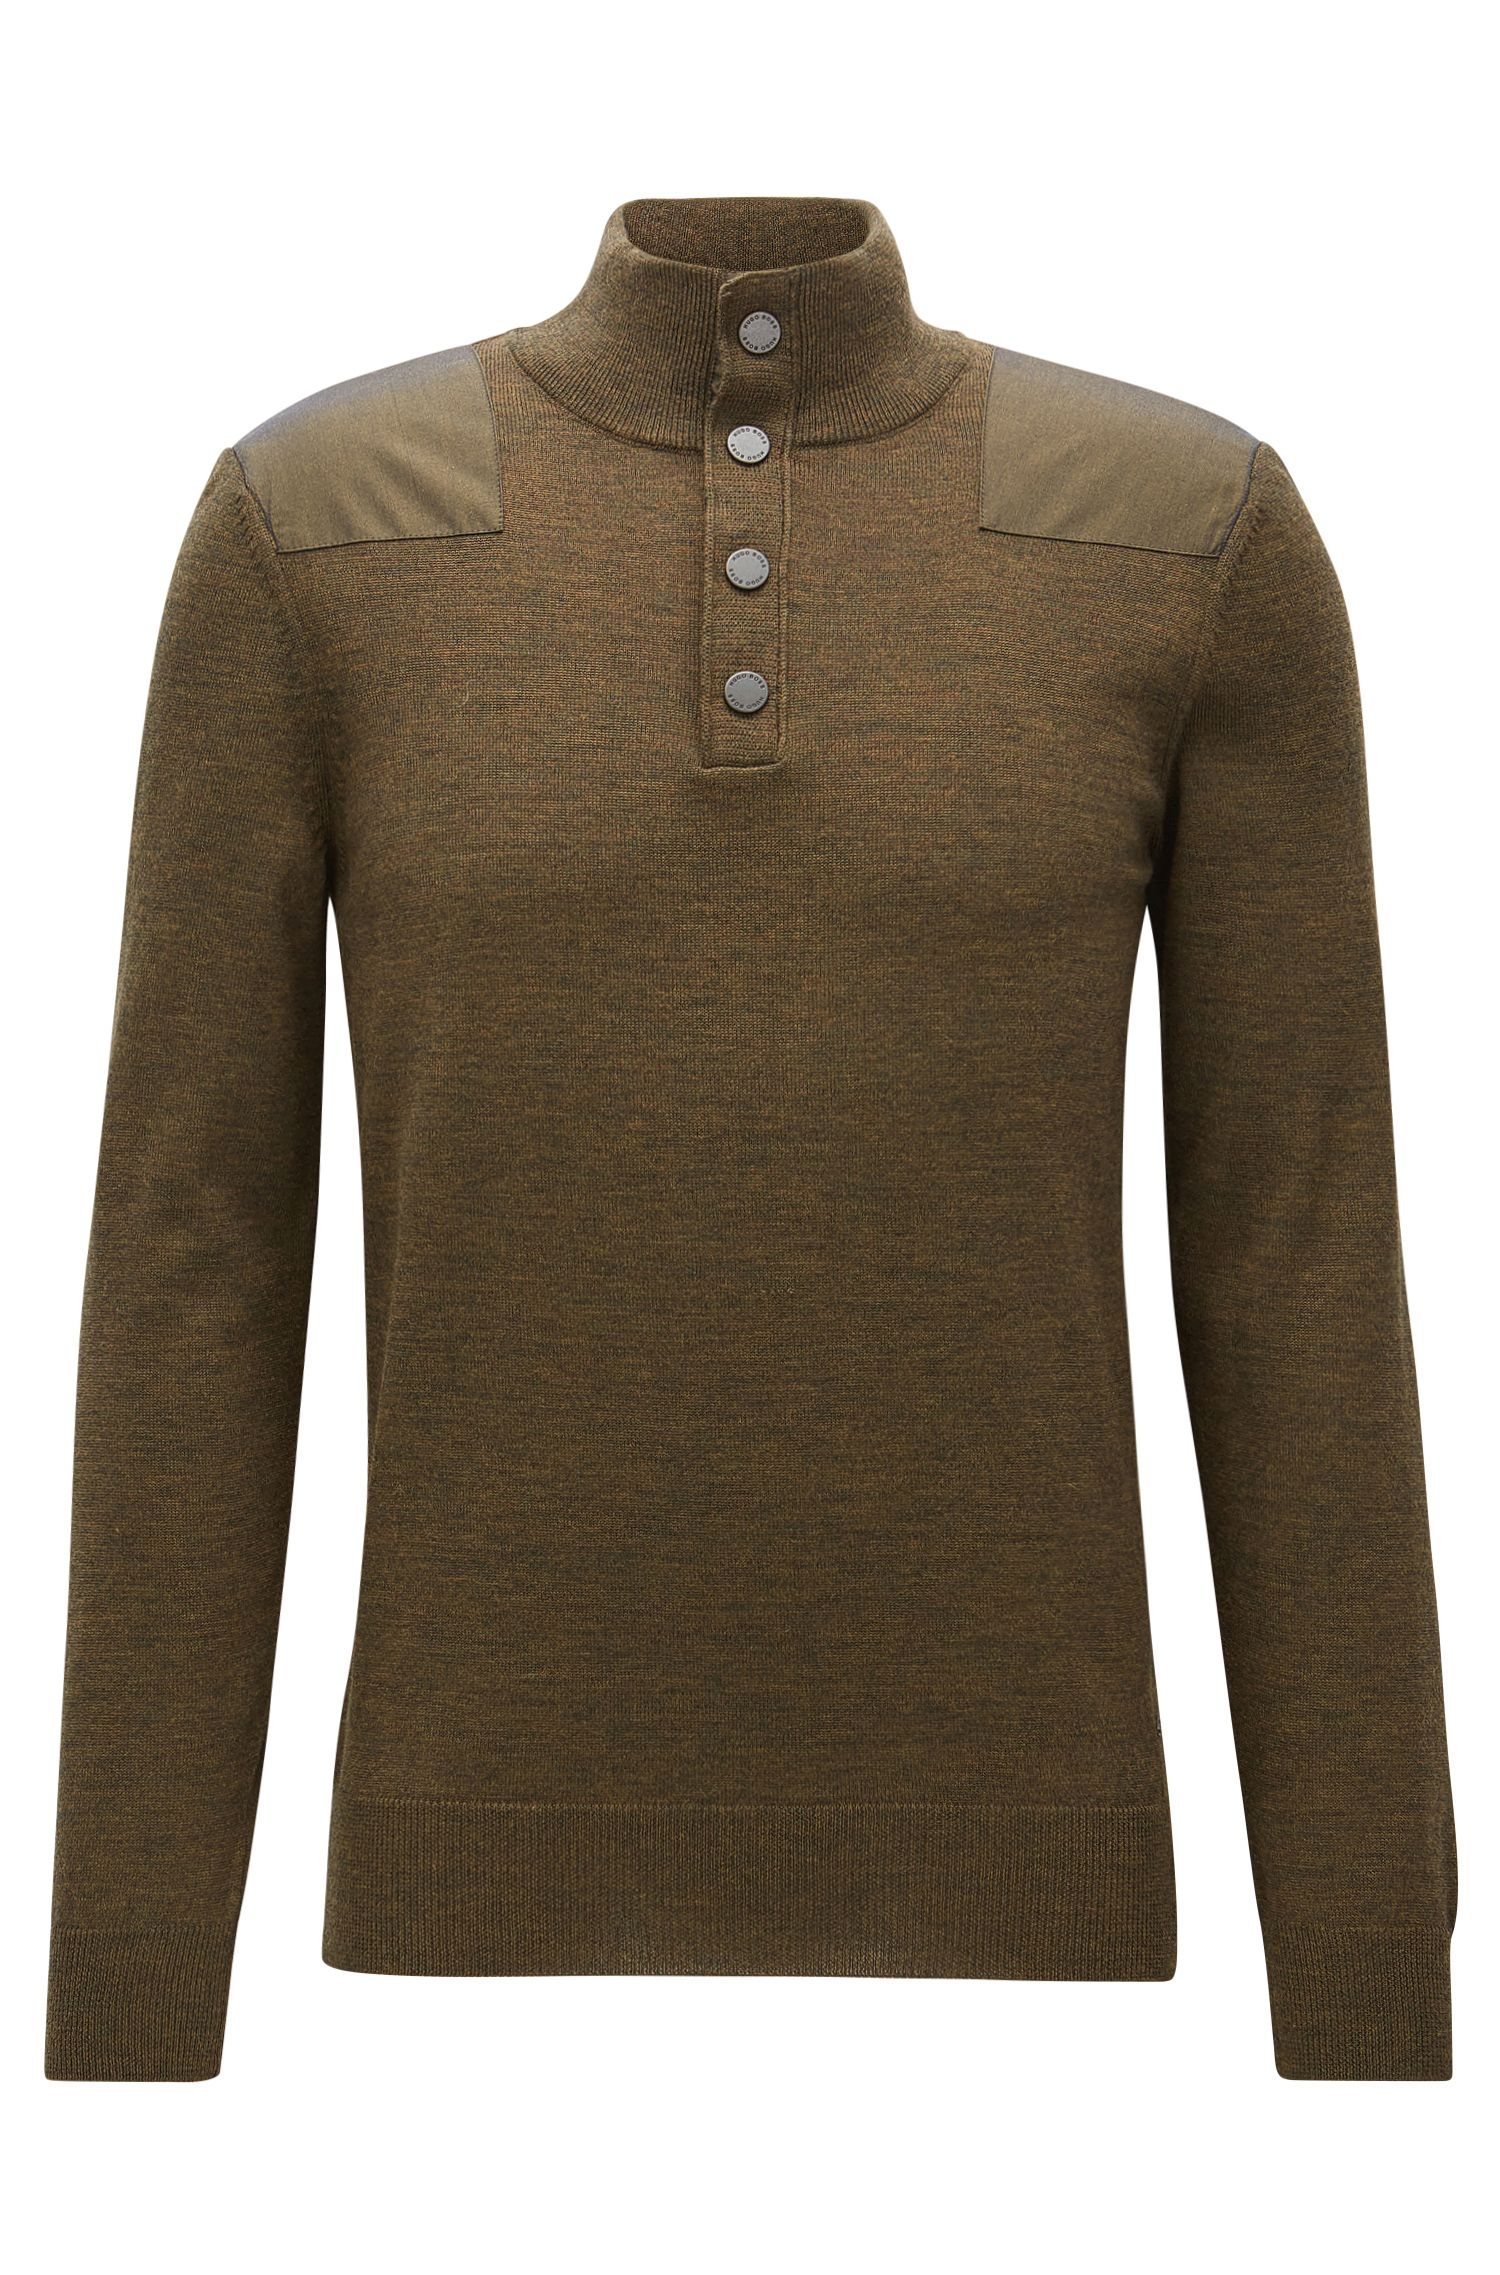 Wool sweater with shoulder patches